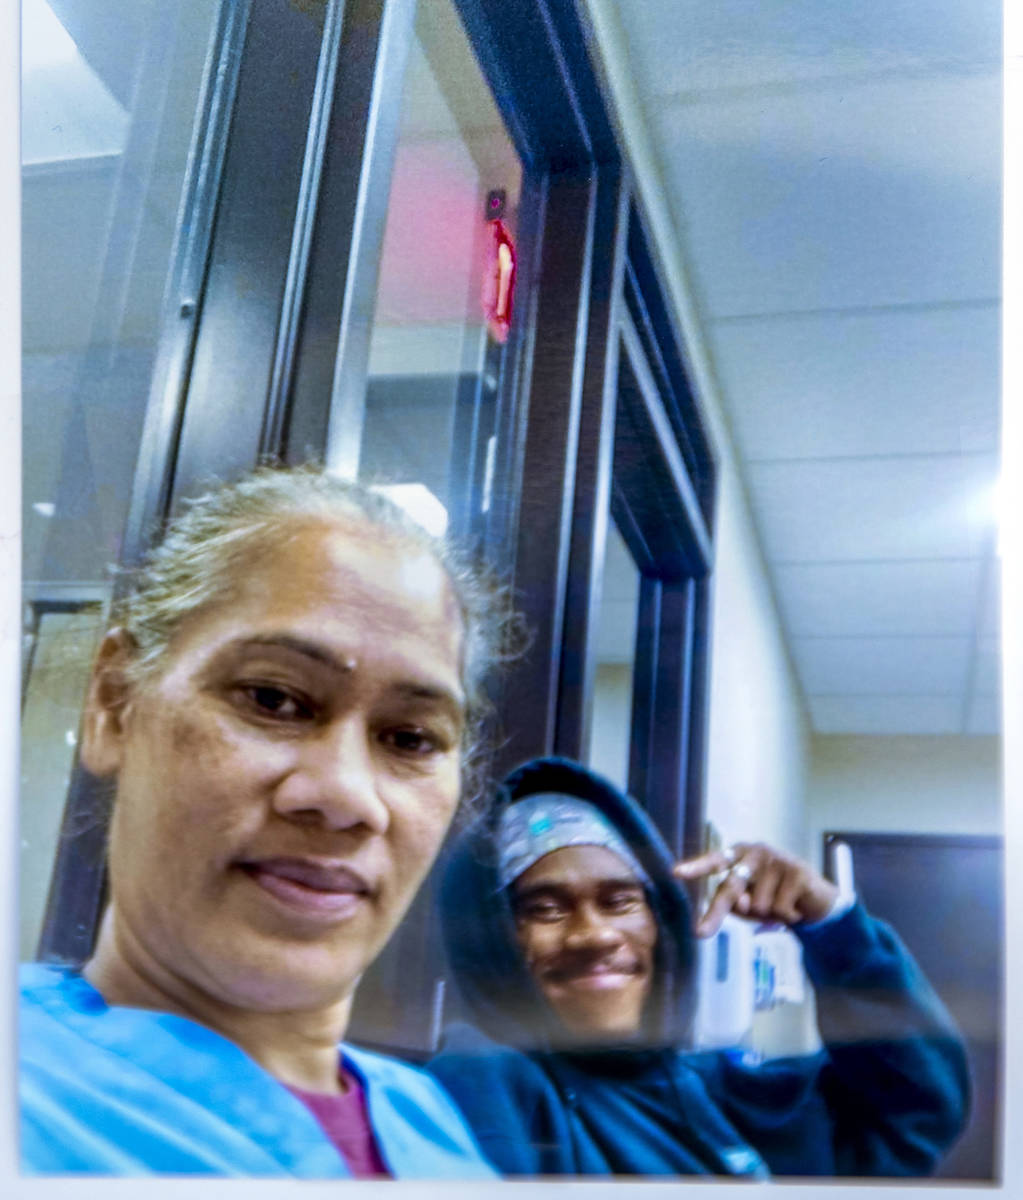 This undated photo shows Evelini Gibbs, left, with her son Genesis Atkins, a motorcyclist who w ...